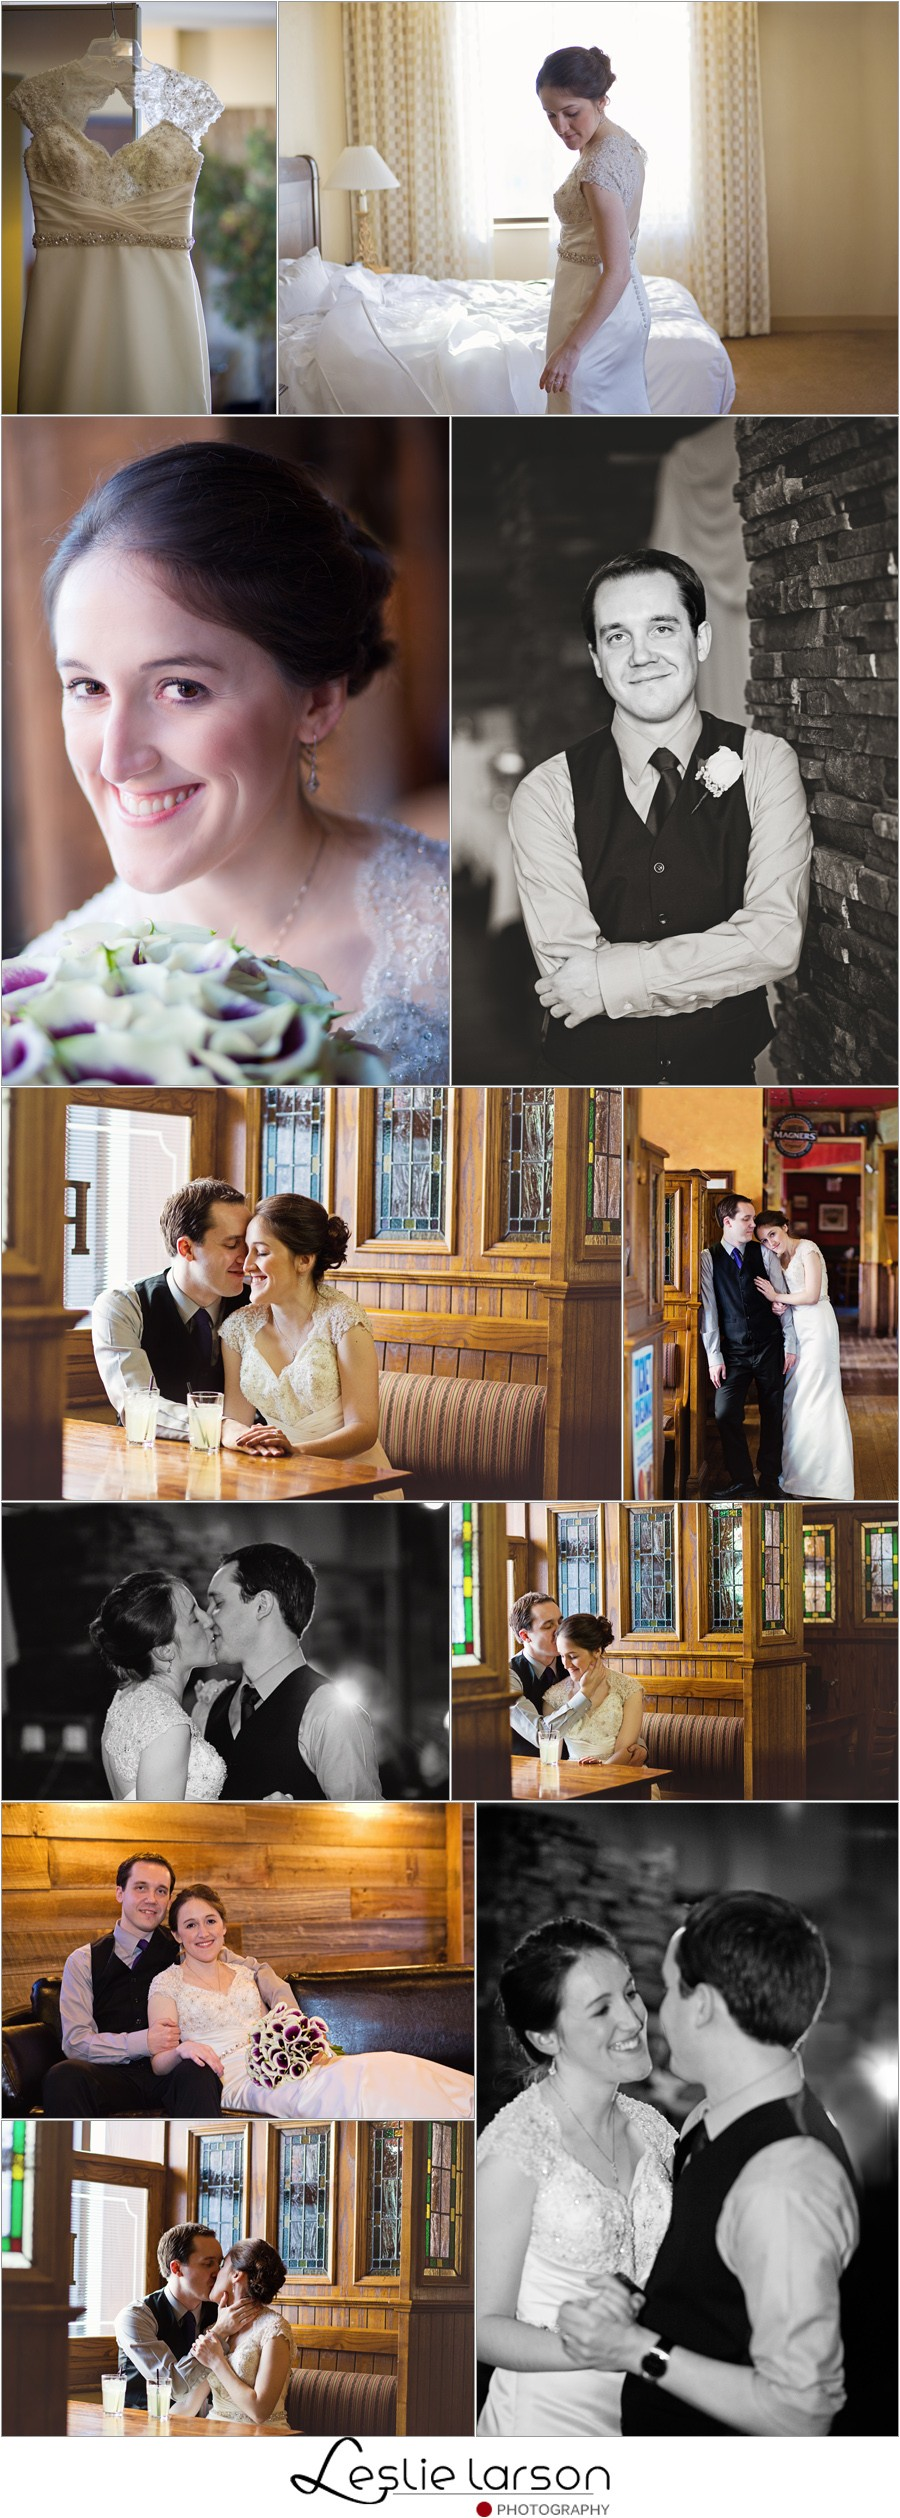 Christina and matt married at stellas fish cafe in for Stellas fish cafe